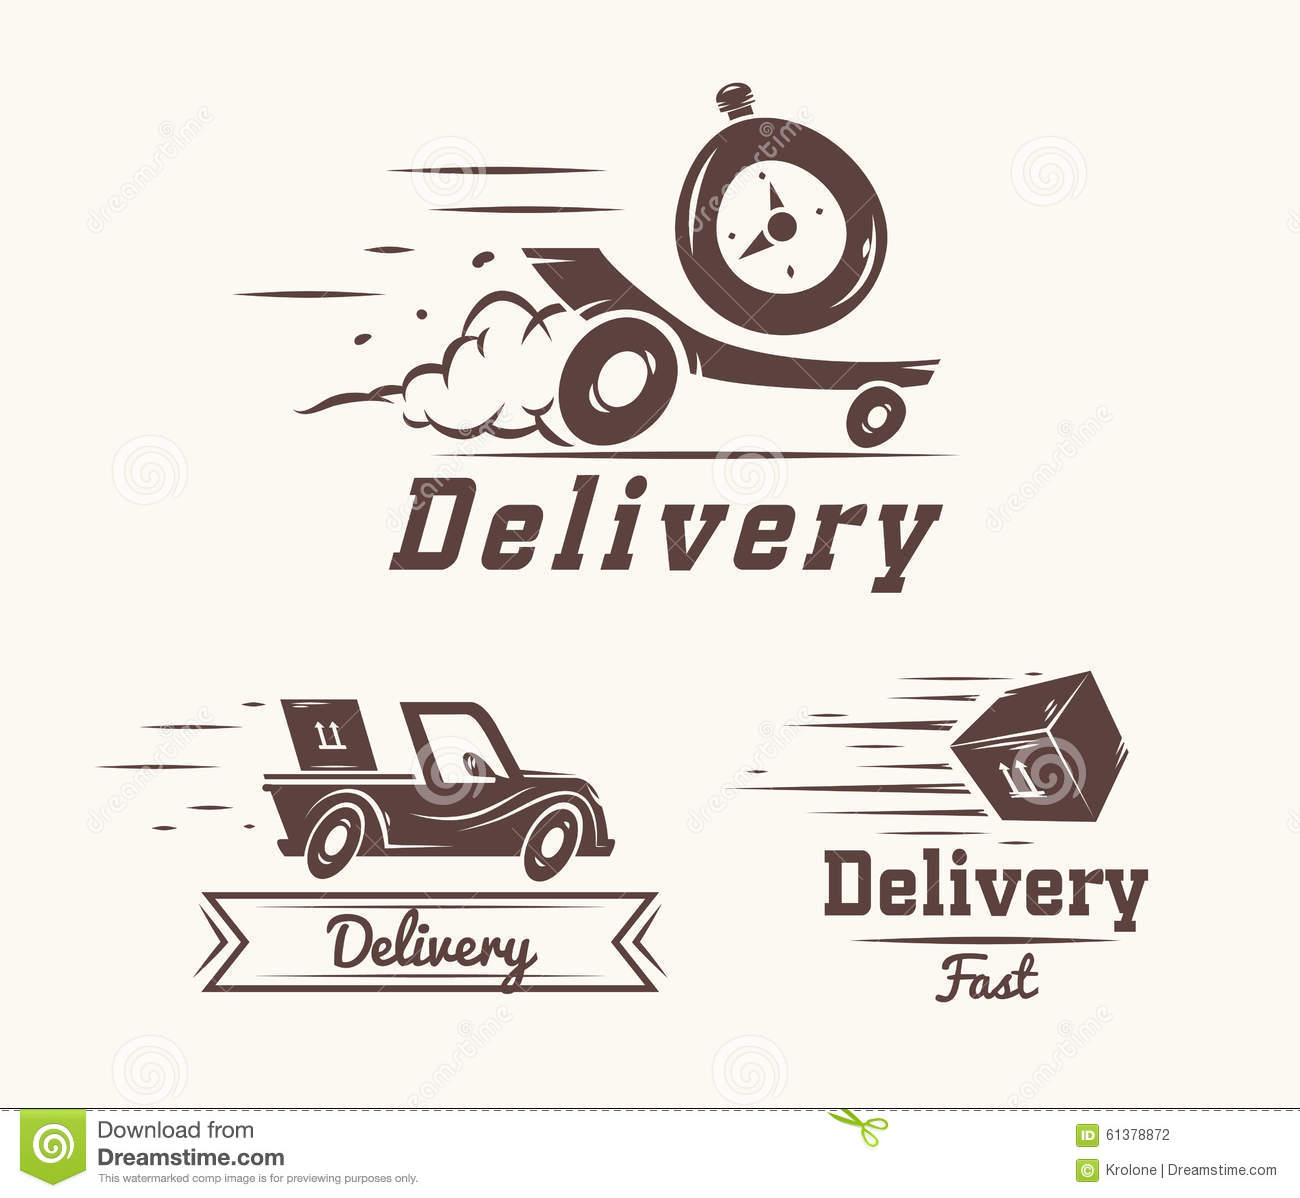 Home Delivery Service Business Plan,Delivery.Home Plans Ideas Picture